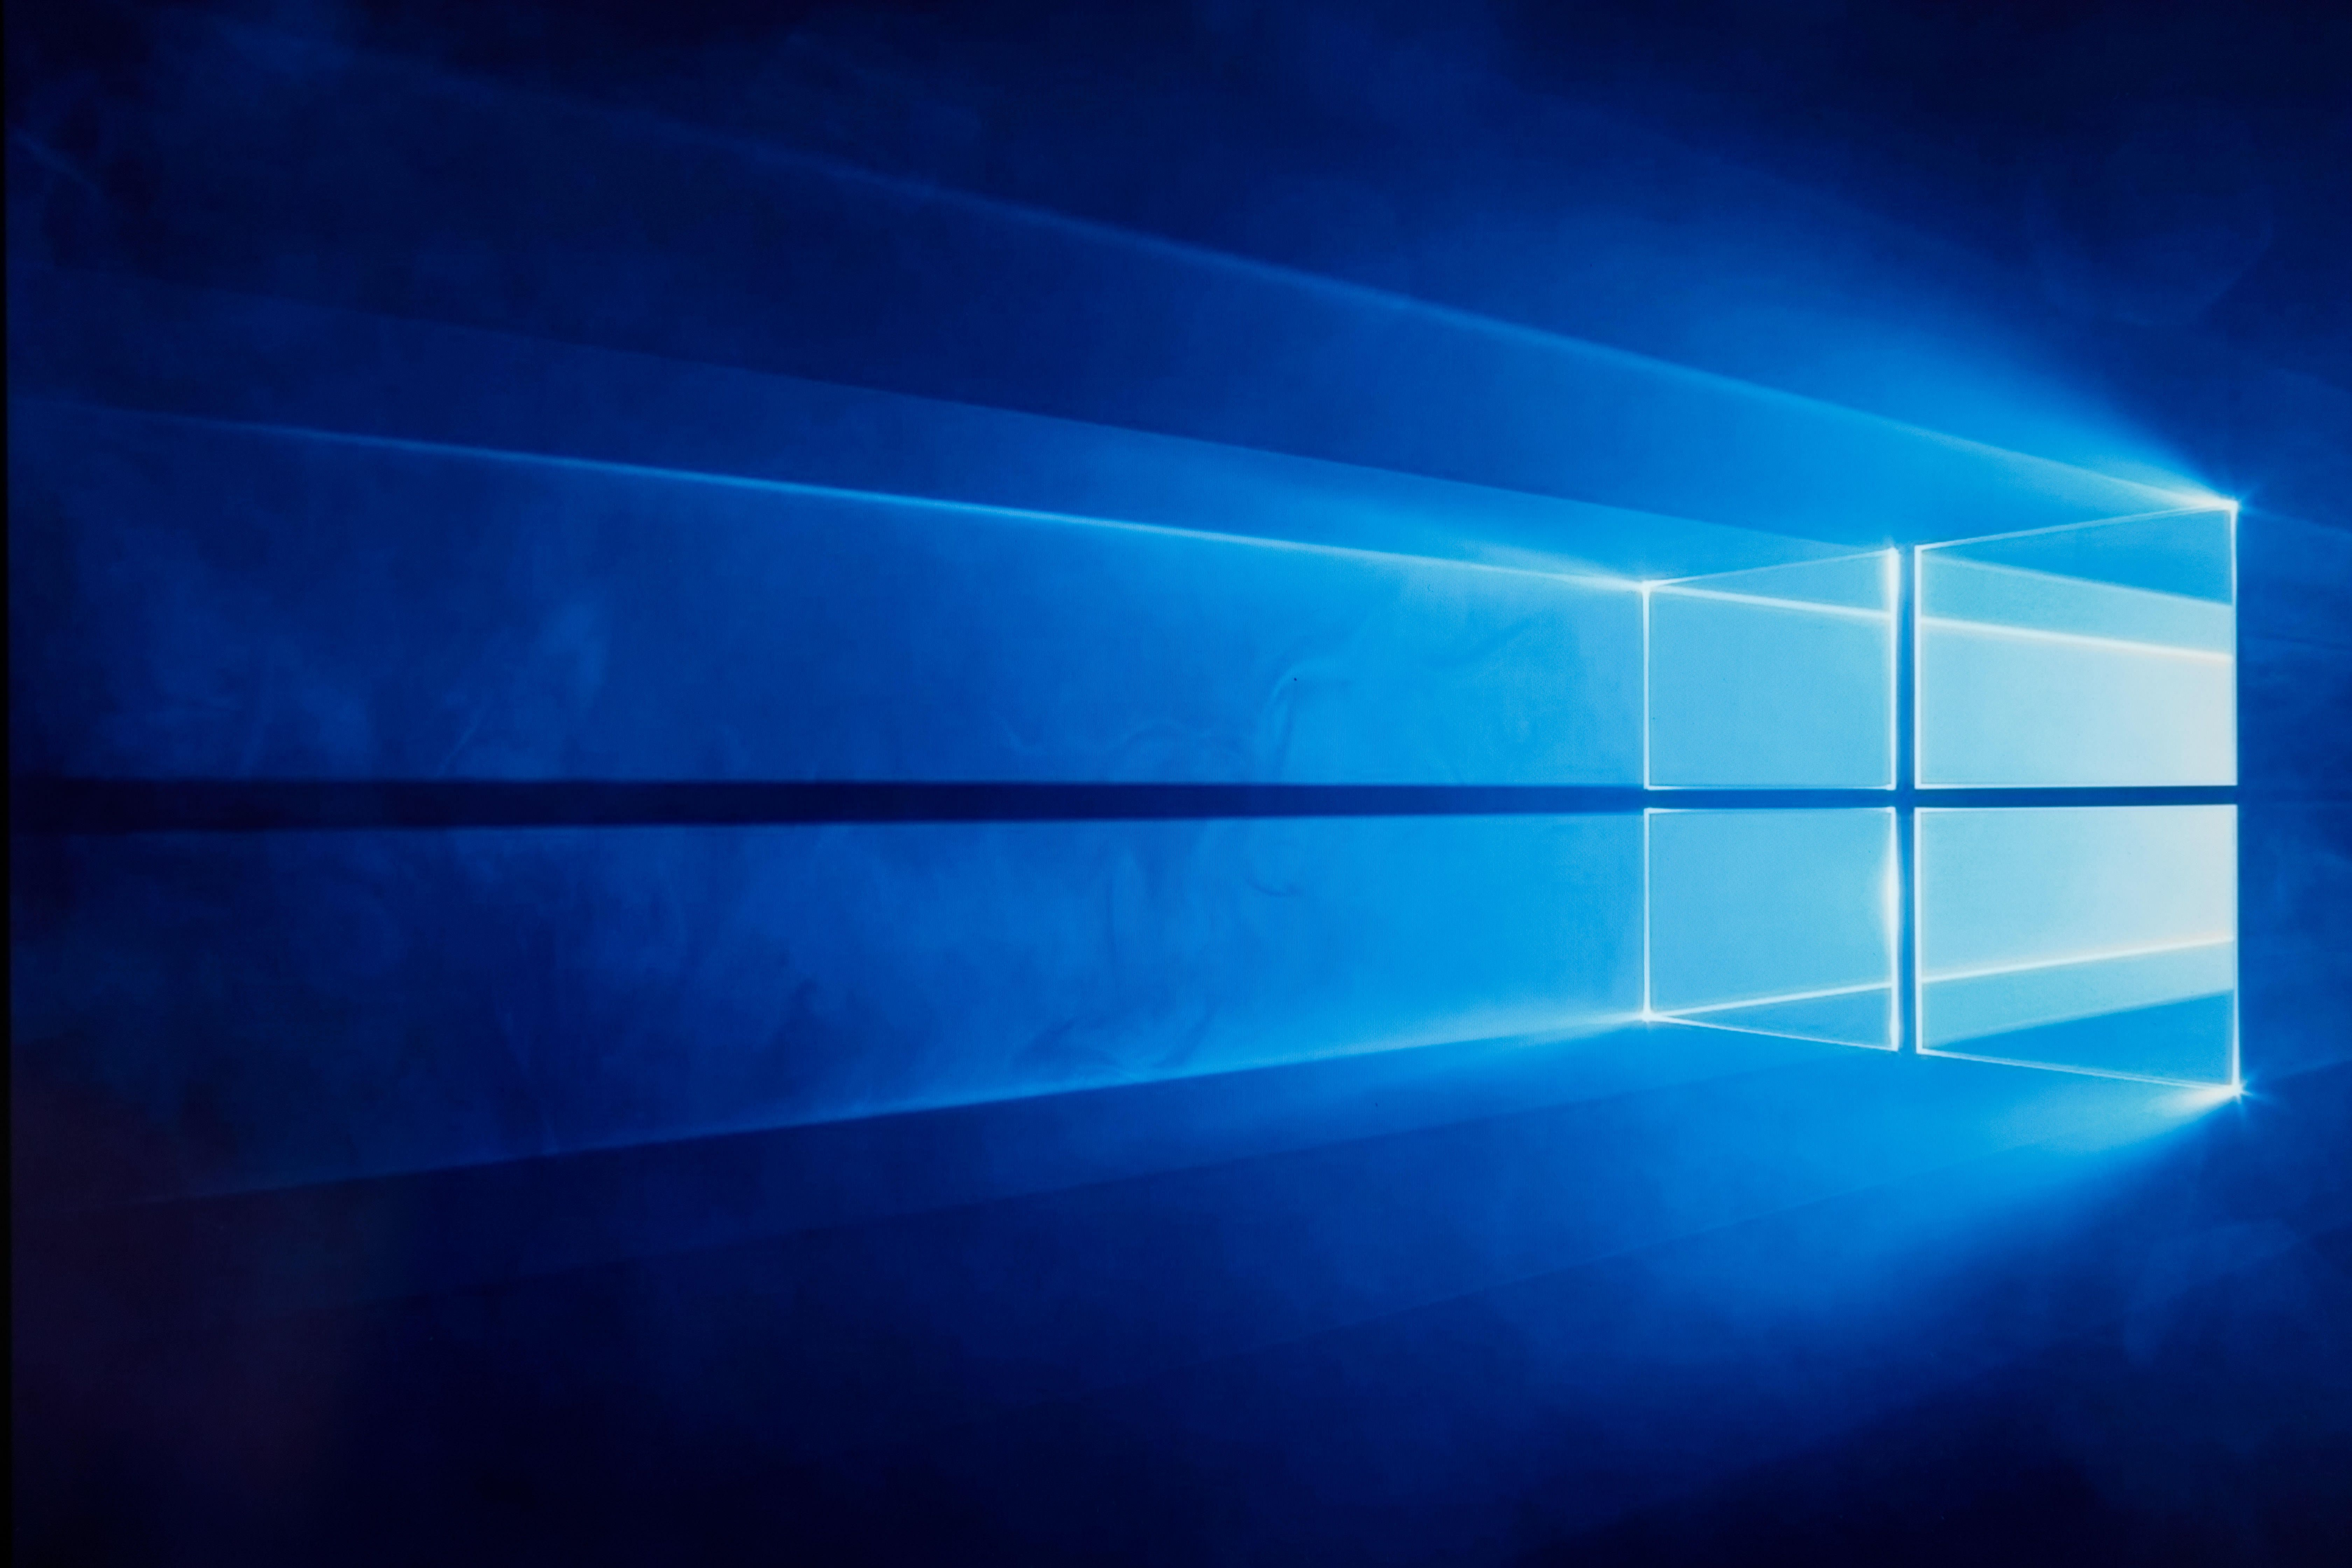 How to enable dark mode in Windows 10   CNET 6720x4480